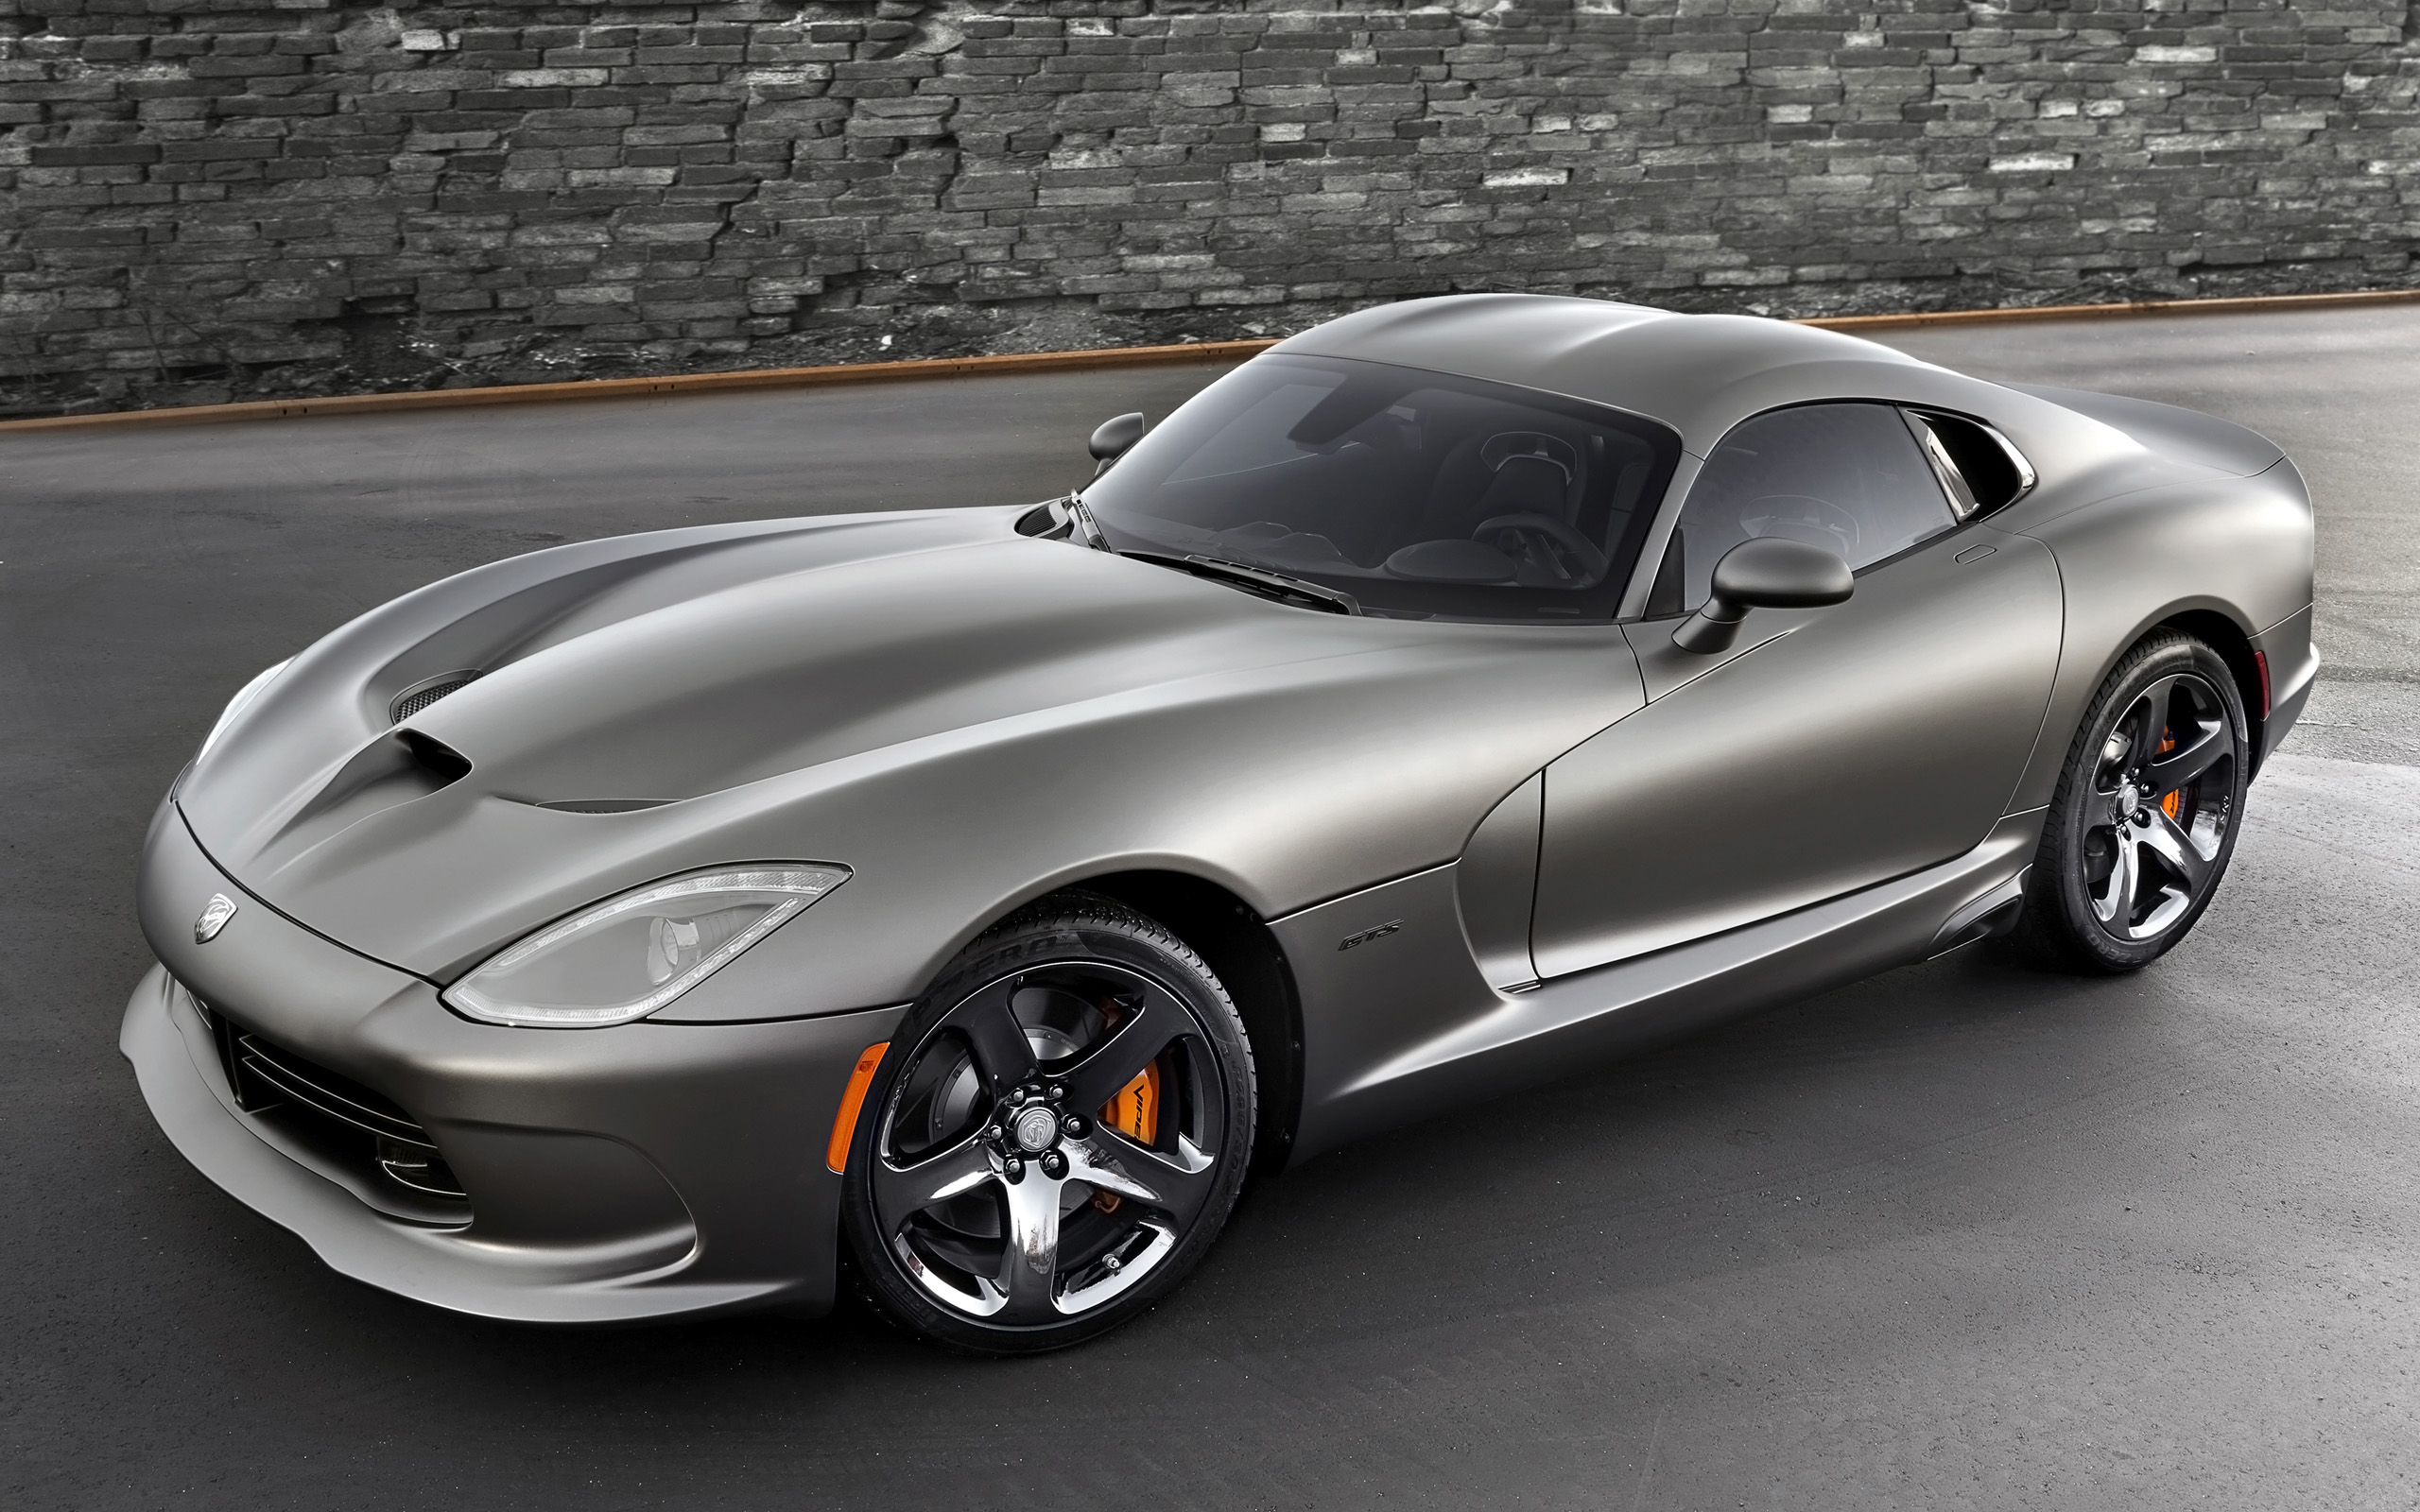 Srt Viper Gts Anodized Carbon Special Wide on Lincoln Diamond Edition